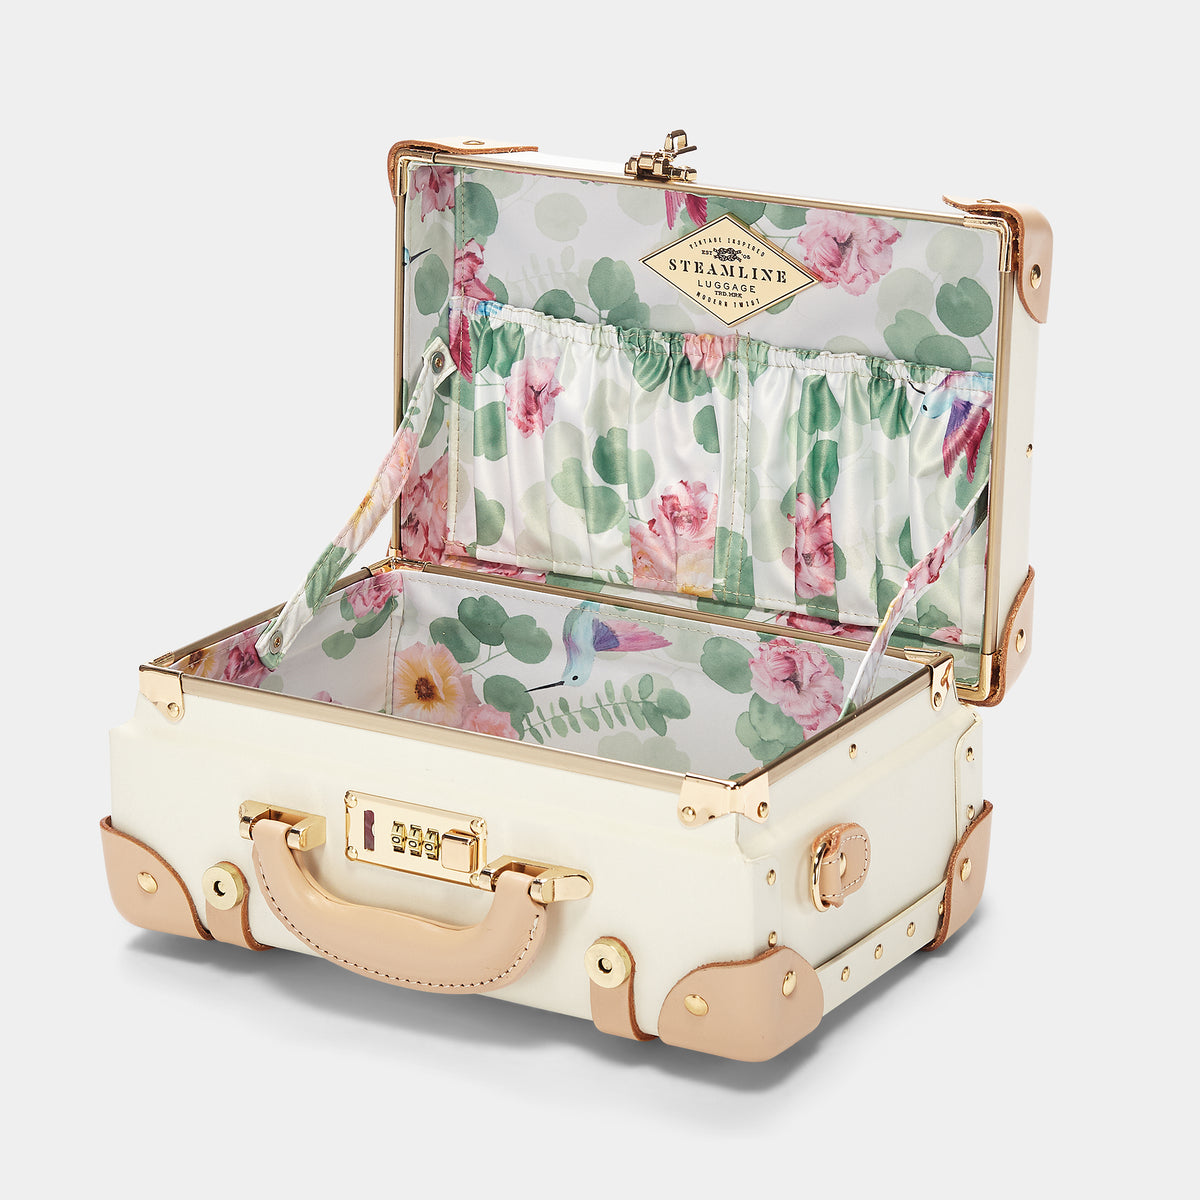 The Sweetheart Vanity - Vintage-Inspired Luggage - Interior Front